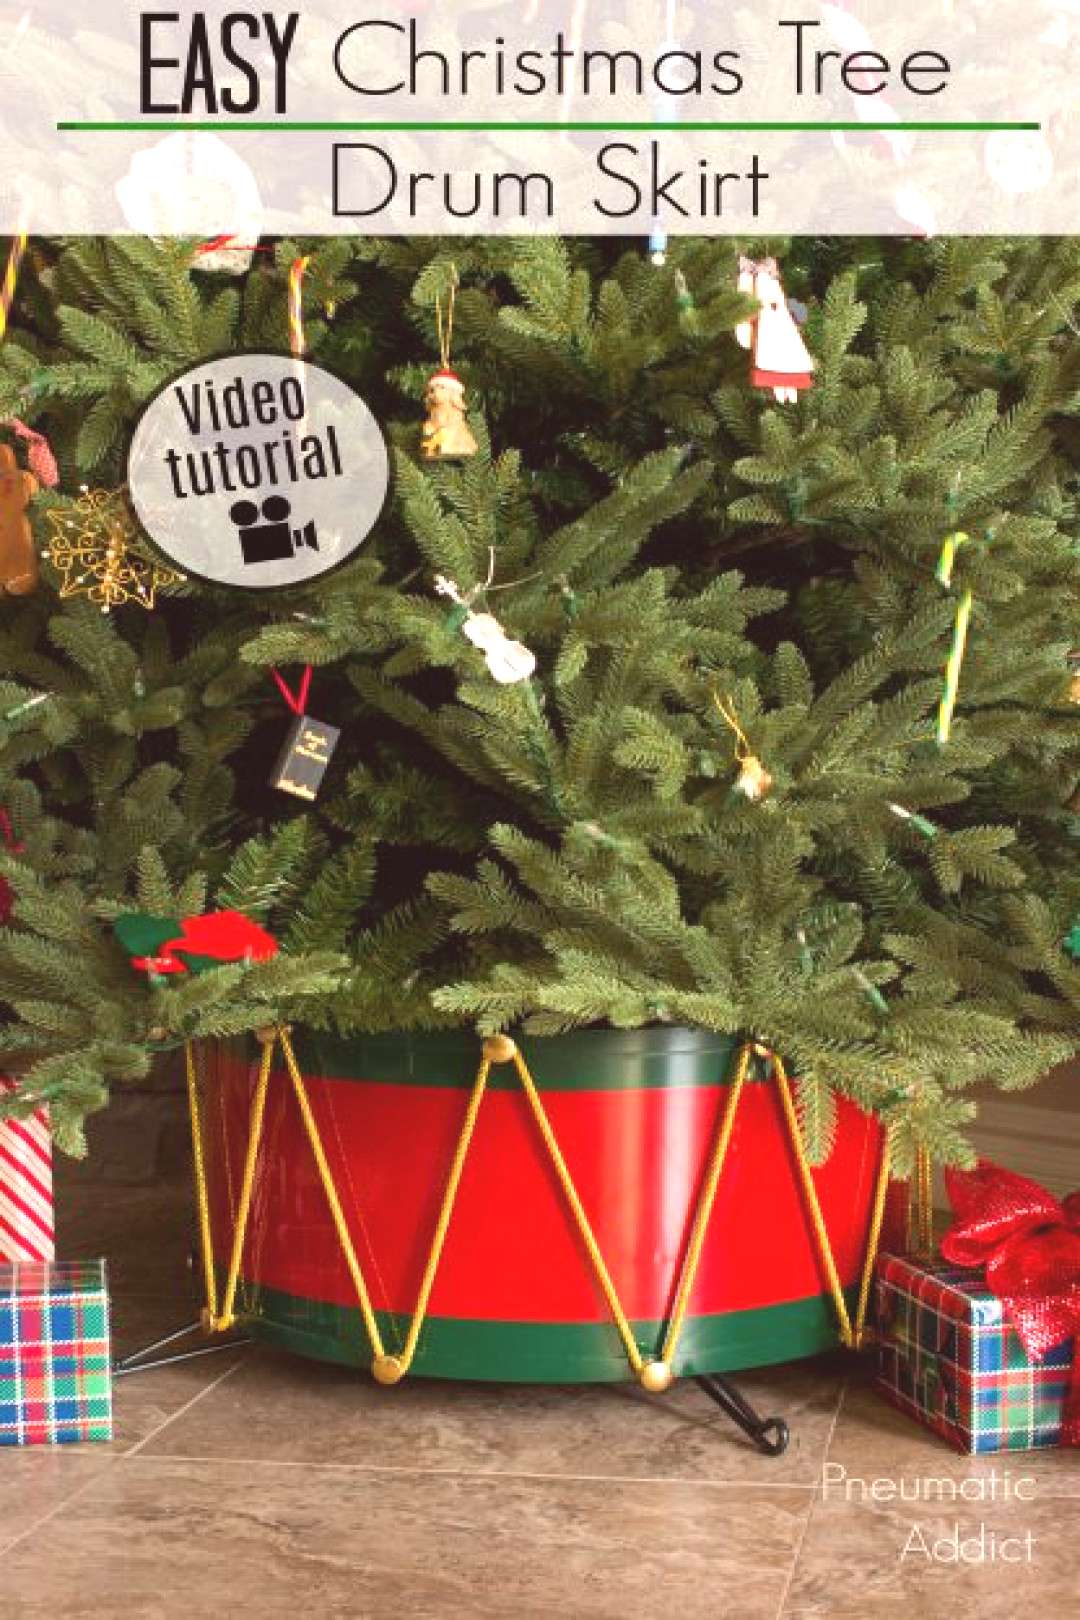 How to make a metal Christmas tree skirt that looks just like a solider's drum! Easy to follow vide